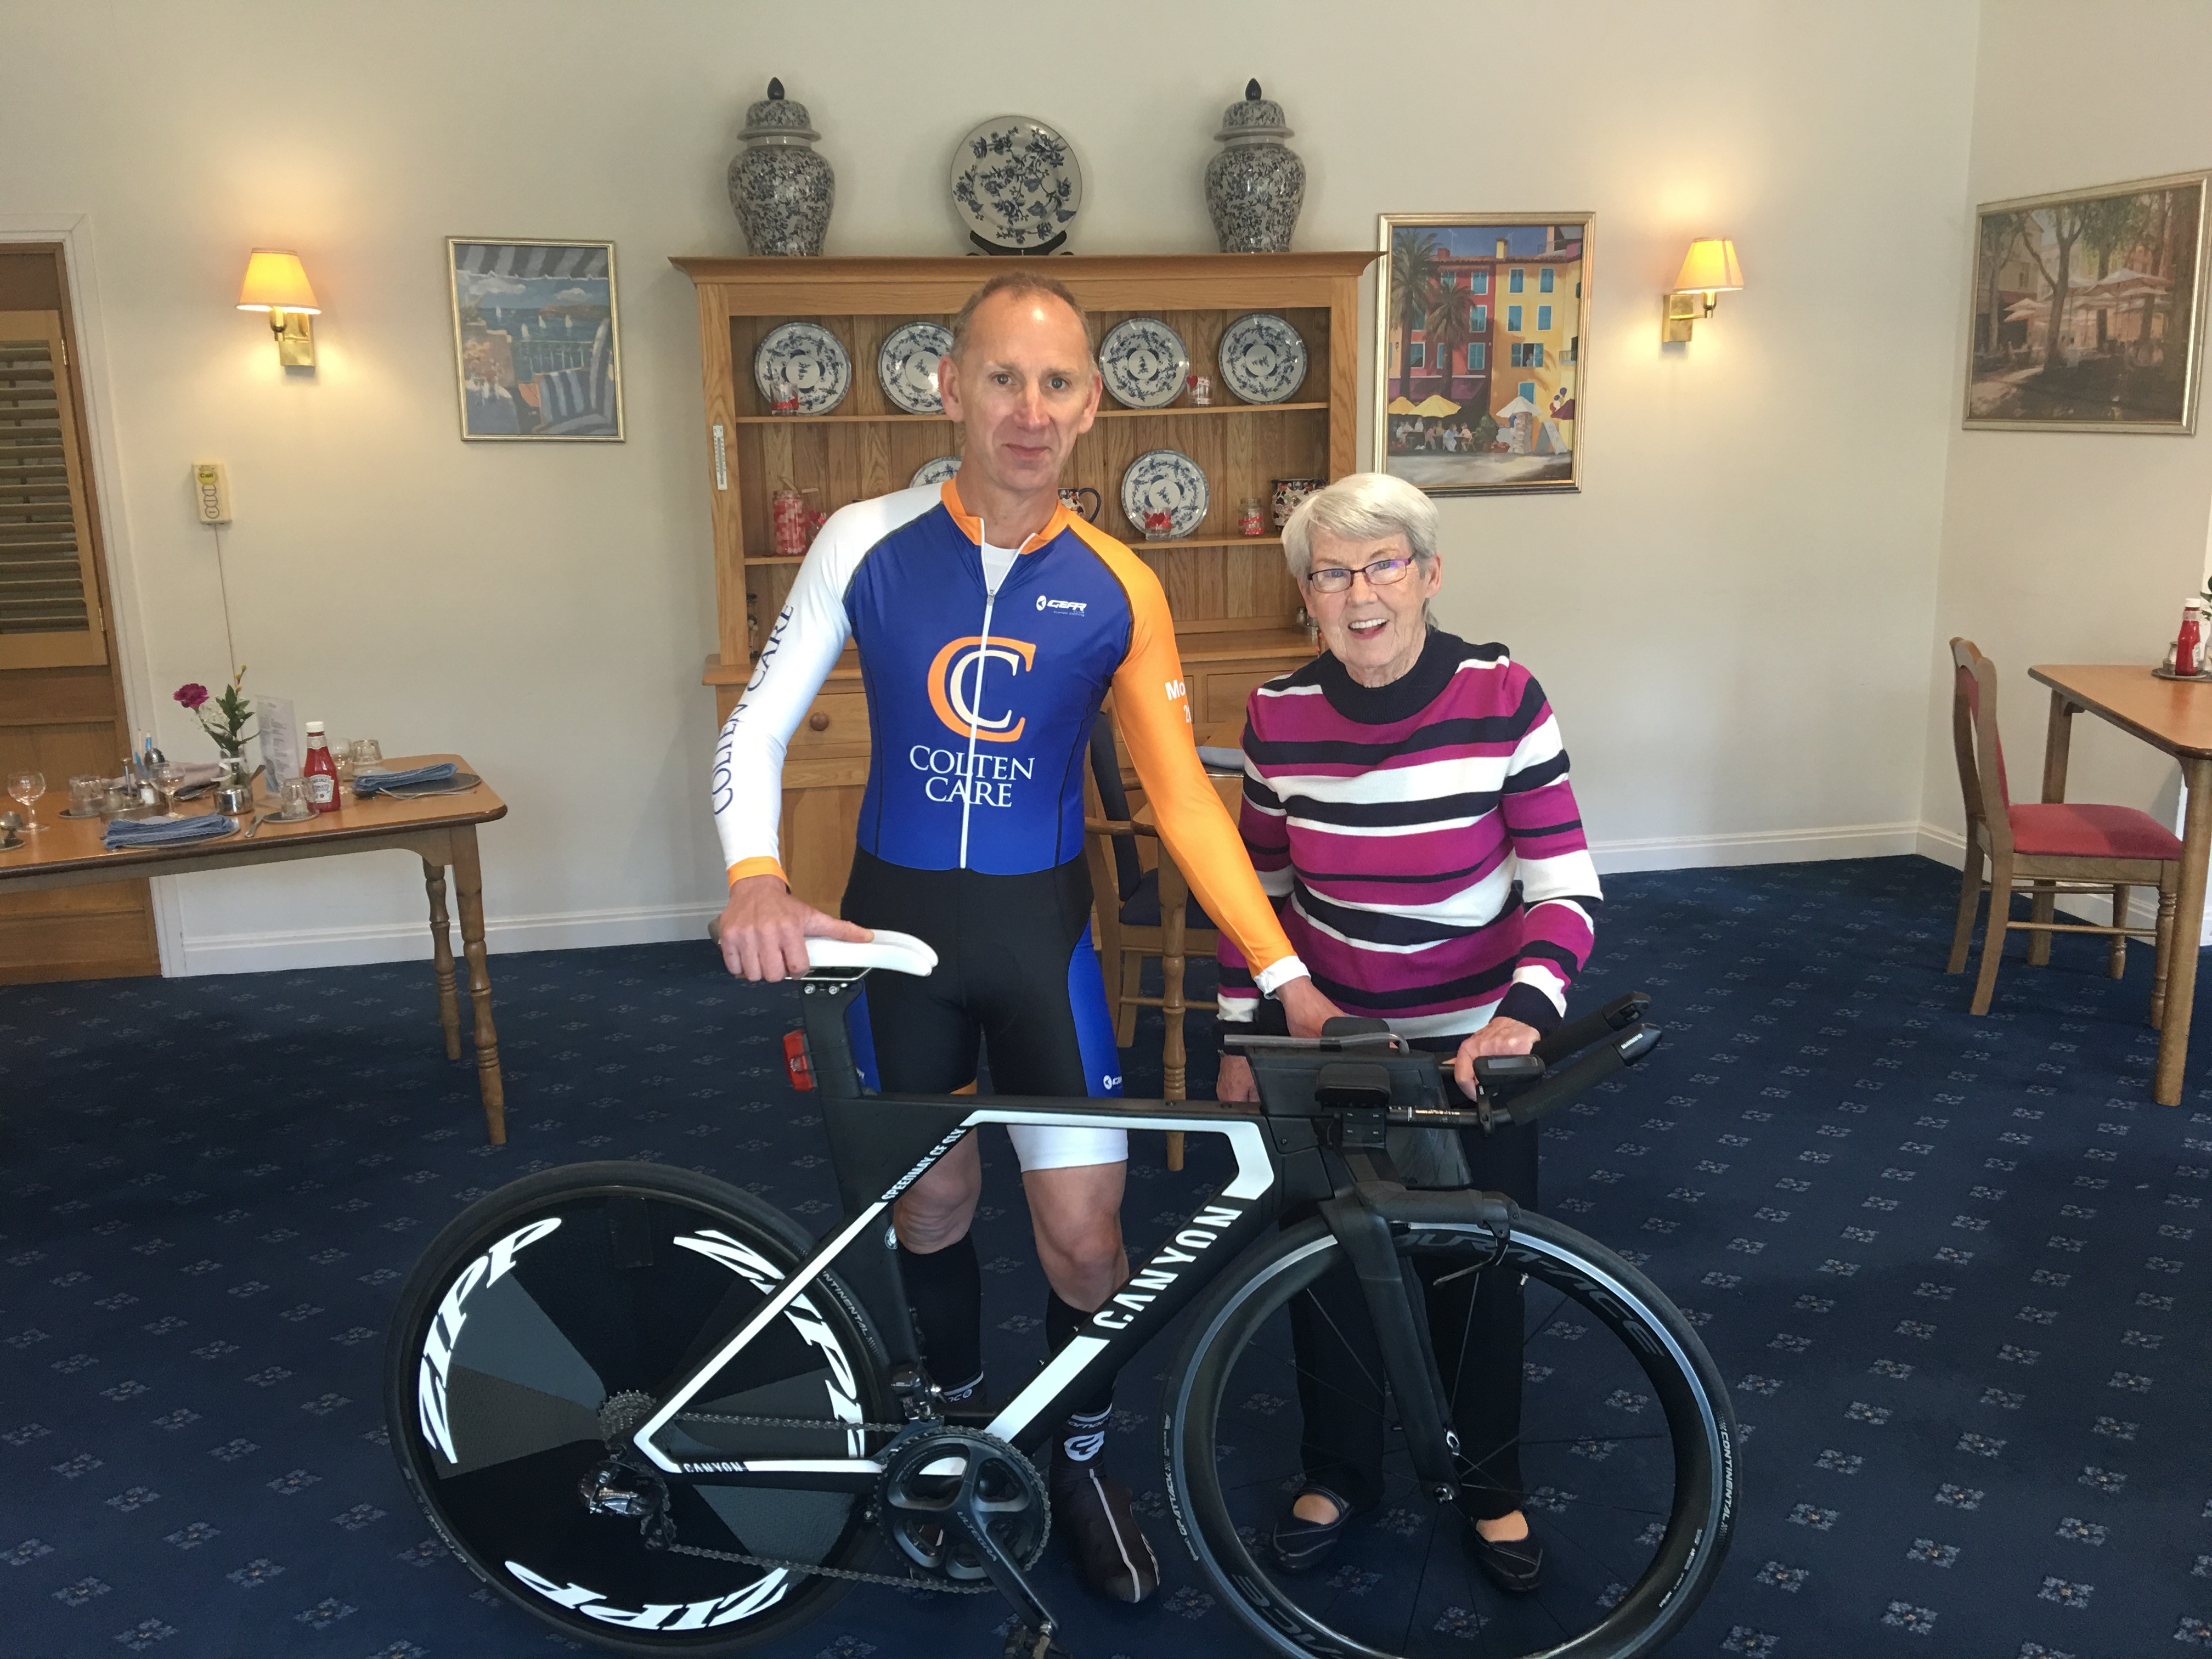 Promoting Cycling for all ages with Colten Care